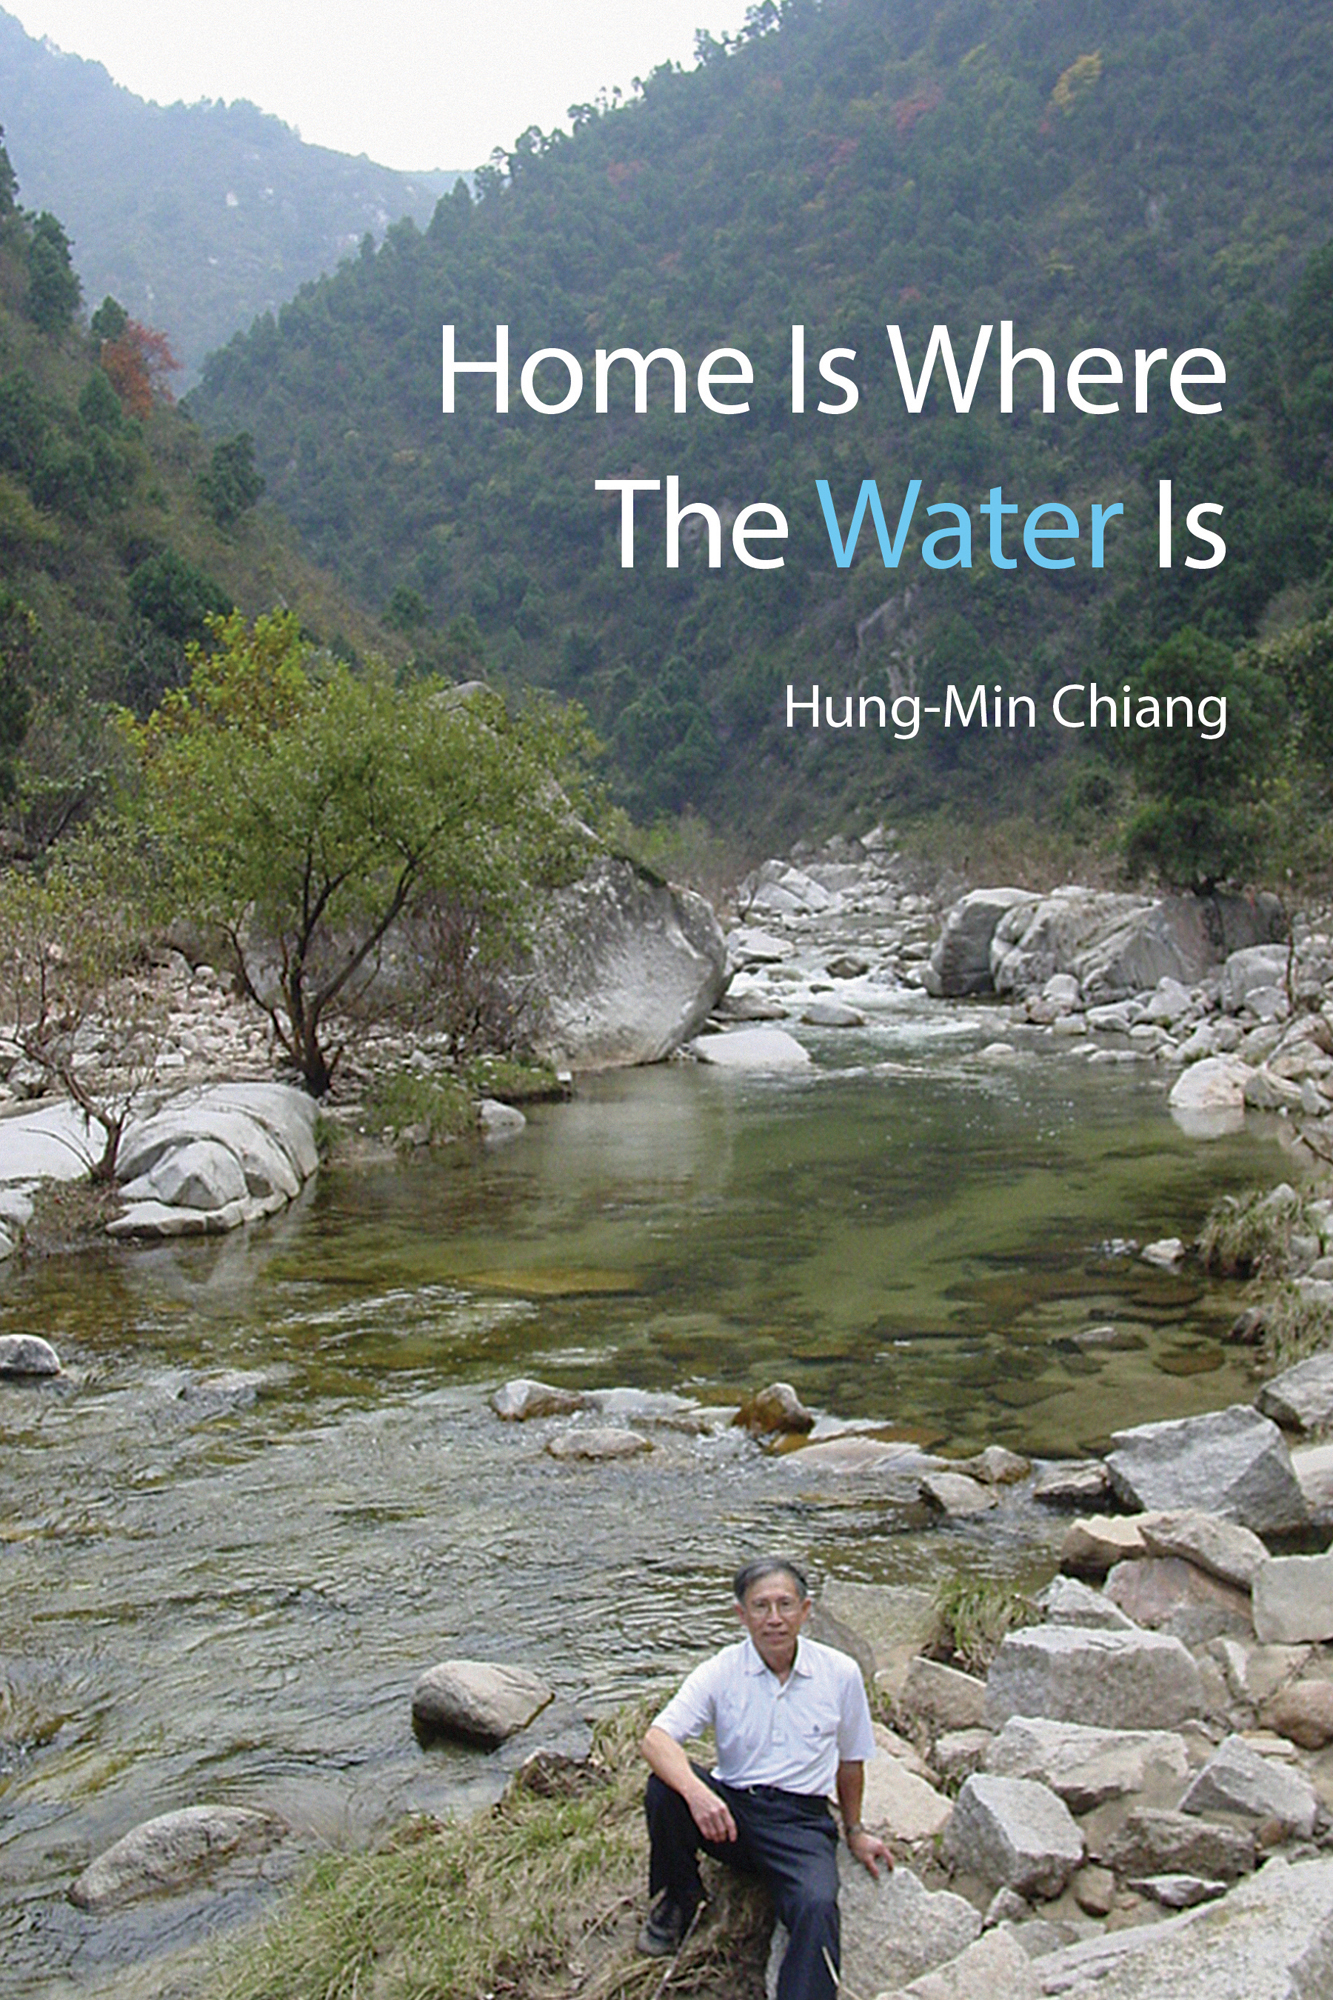 Home Is Where the Water Is